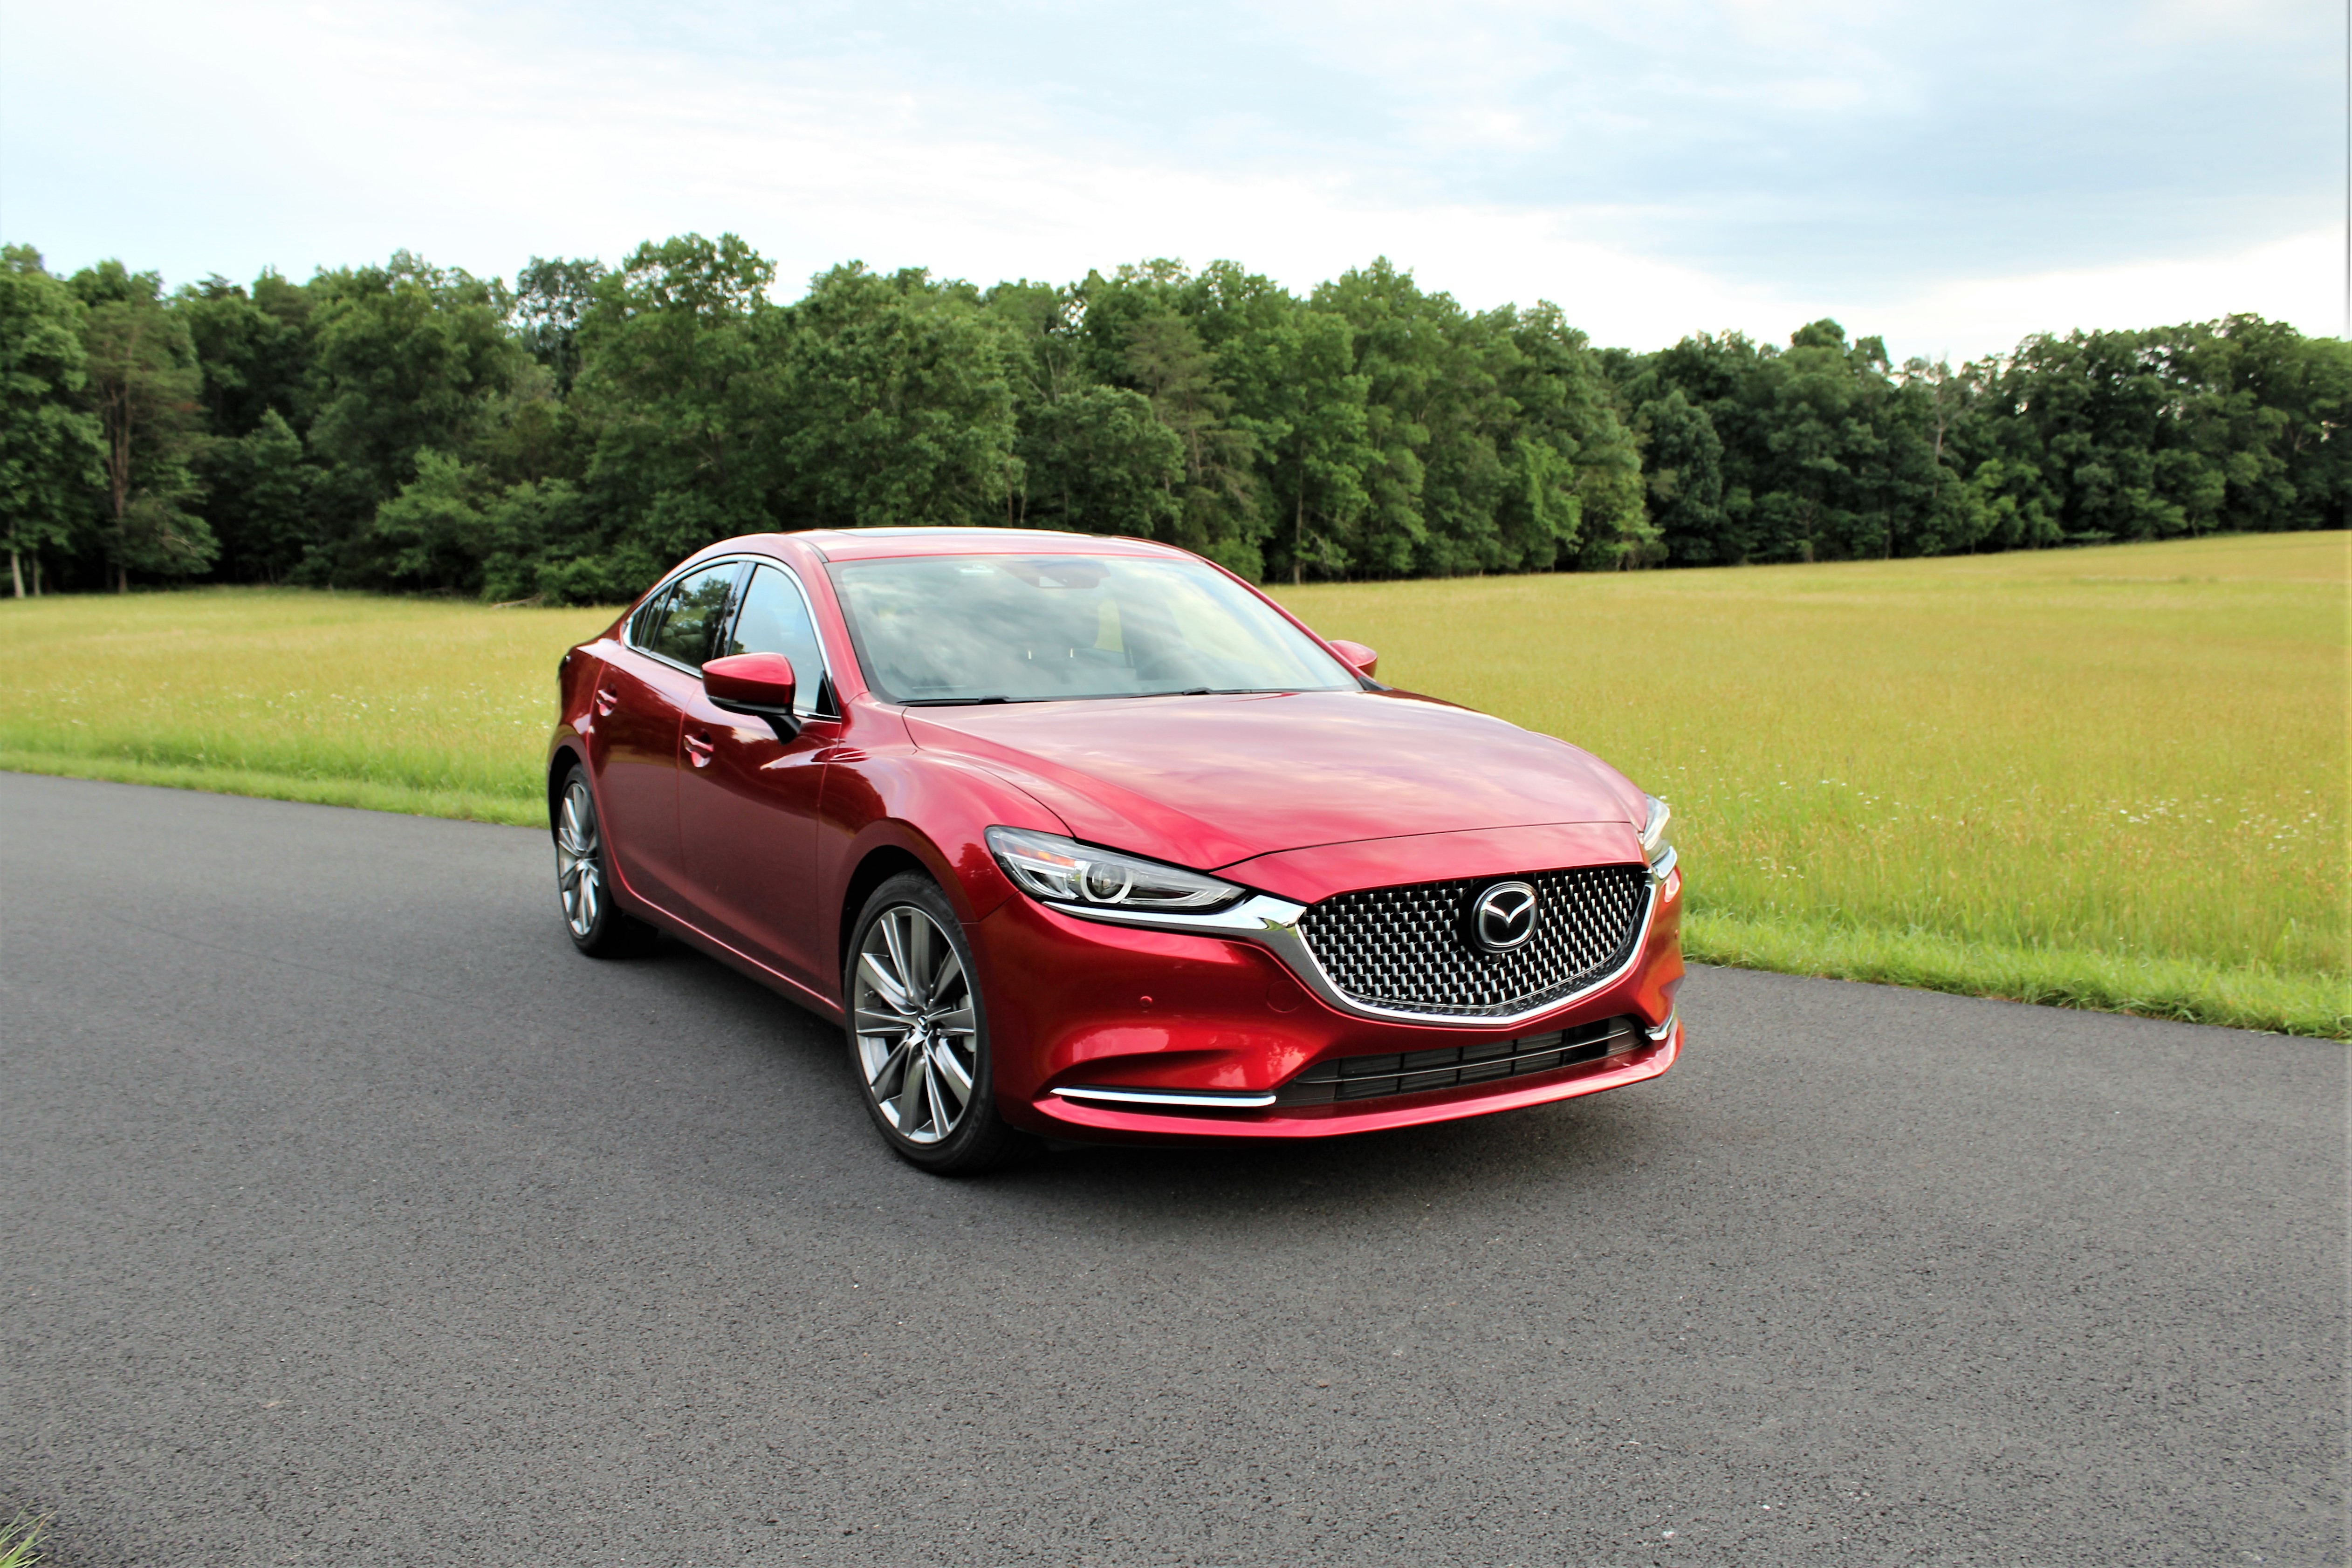 Mazda-6-Frnt-3-Pass-Colonial-Roads